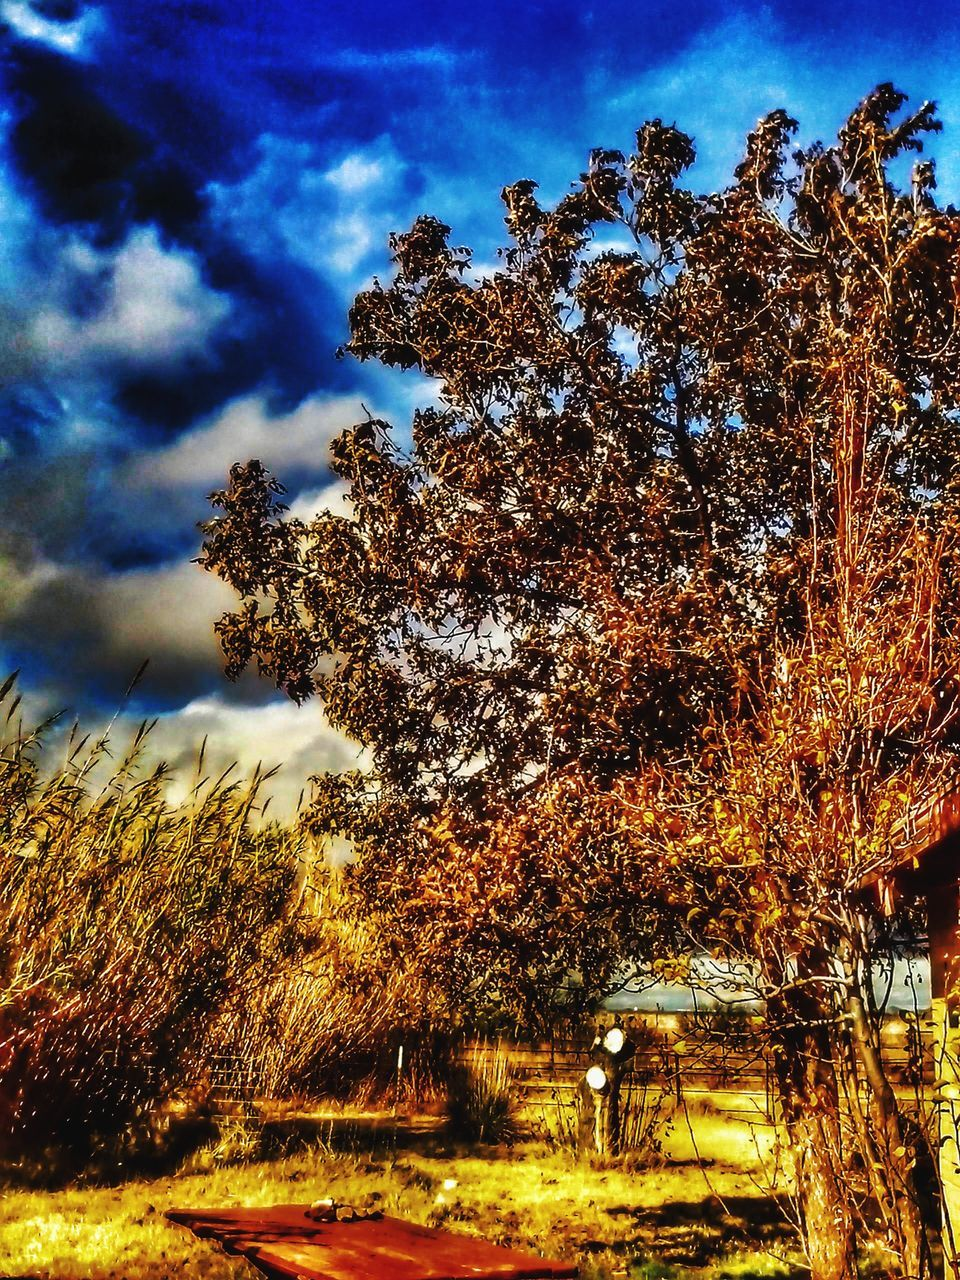 tree, sky, nature, low angle view, no people, day, outdoors, growth, cloud - sky, beauty in nature, tranquility, scenics